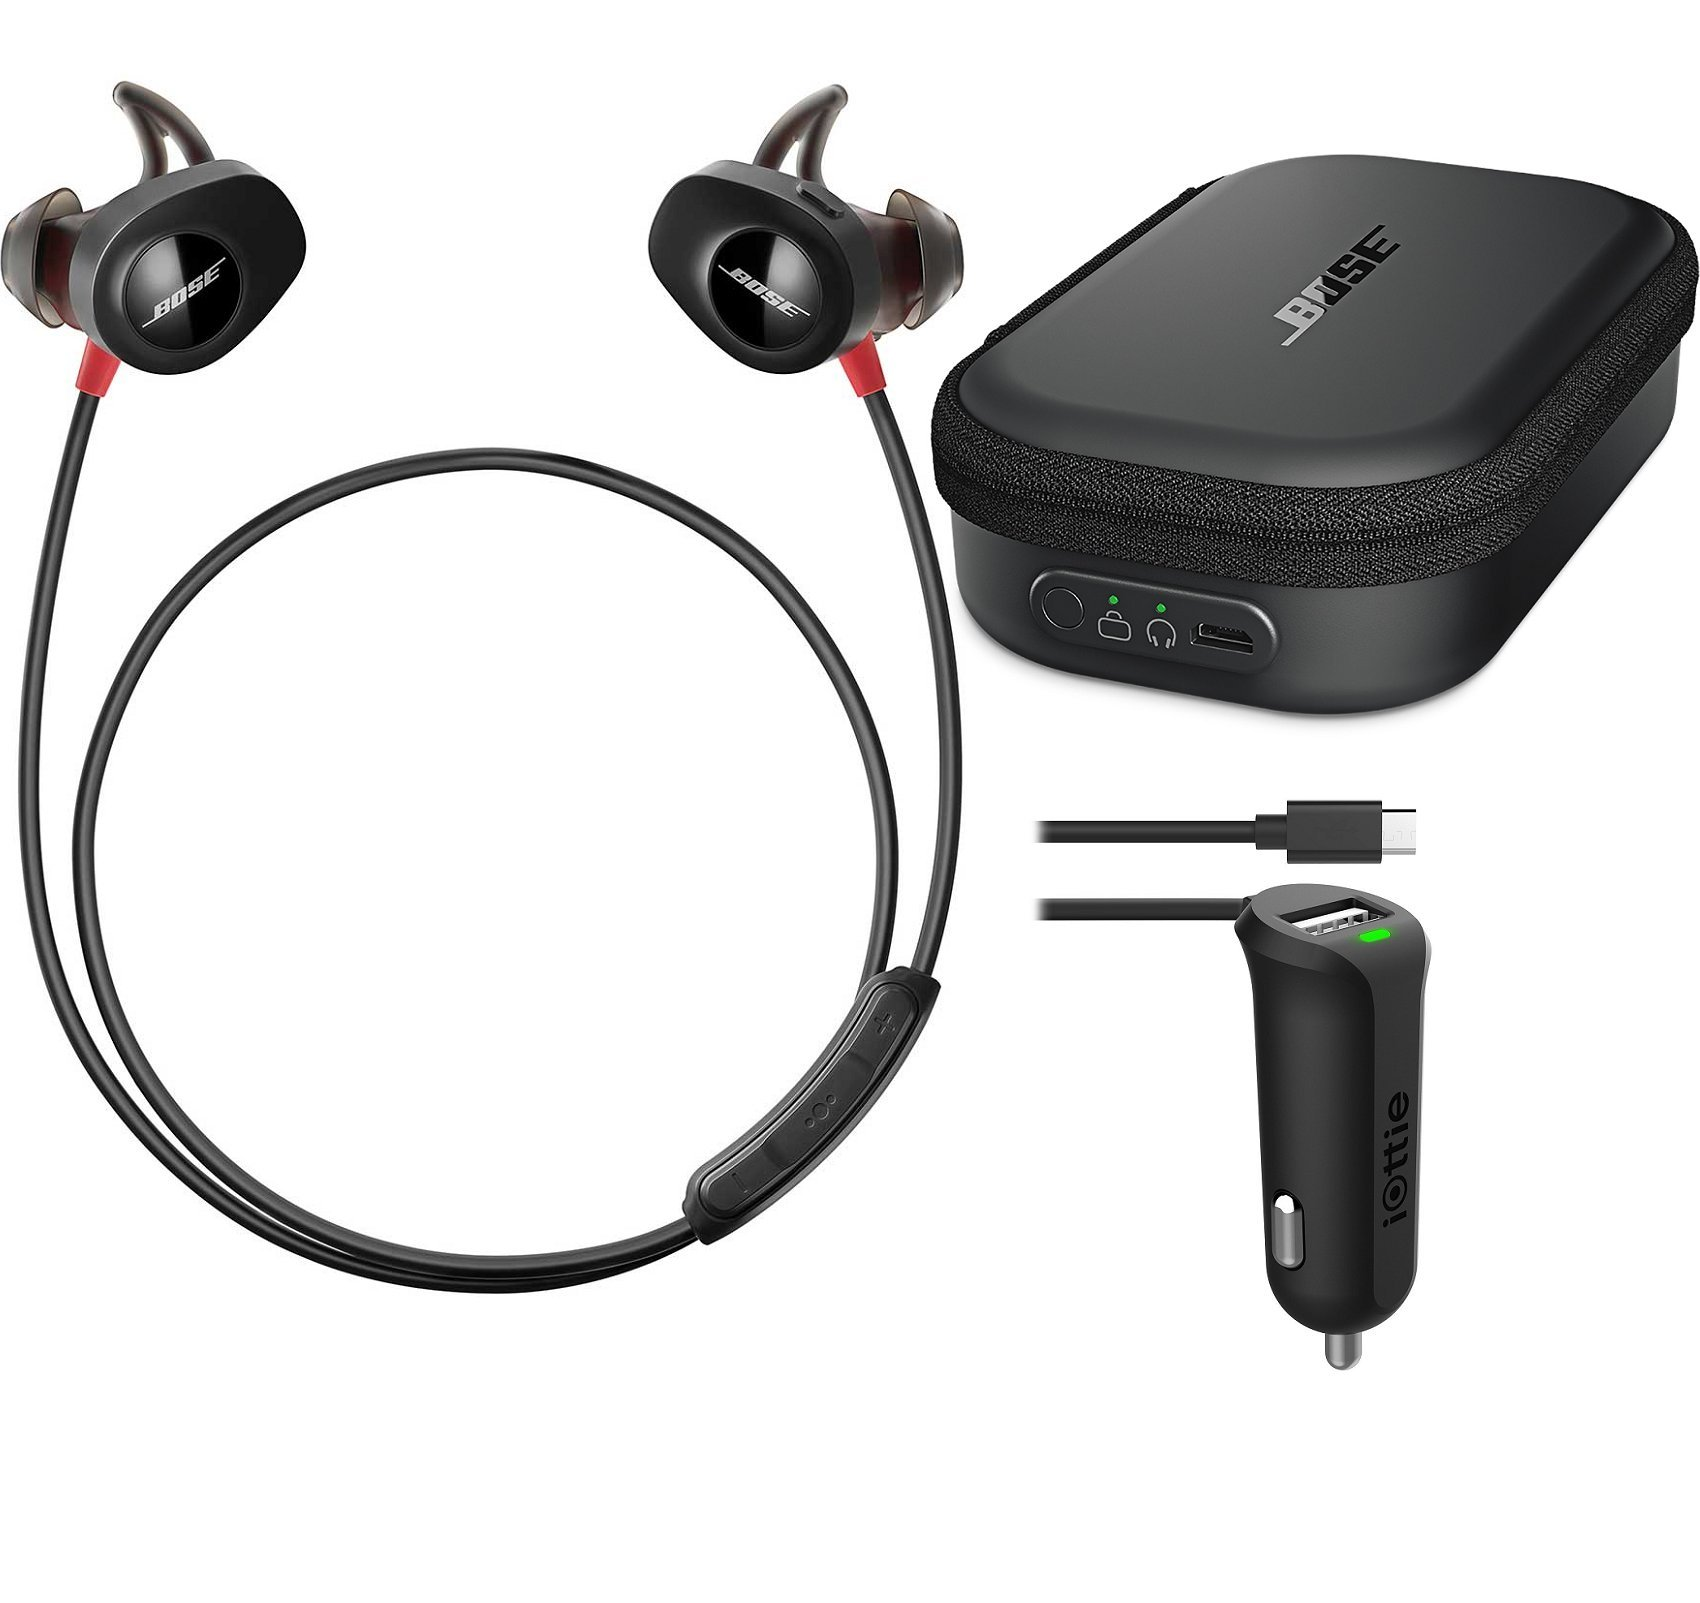 Bose SoundSport Pulse Sport Heart Rate Bluetooth Wireless In-Ear Headphone Bundle with Bose Charging Case & iOttie RapidVolt Micro USB Car Charger